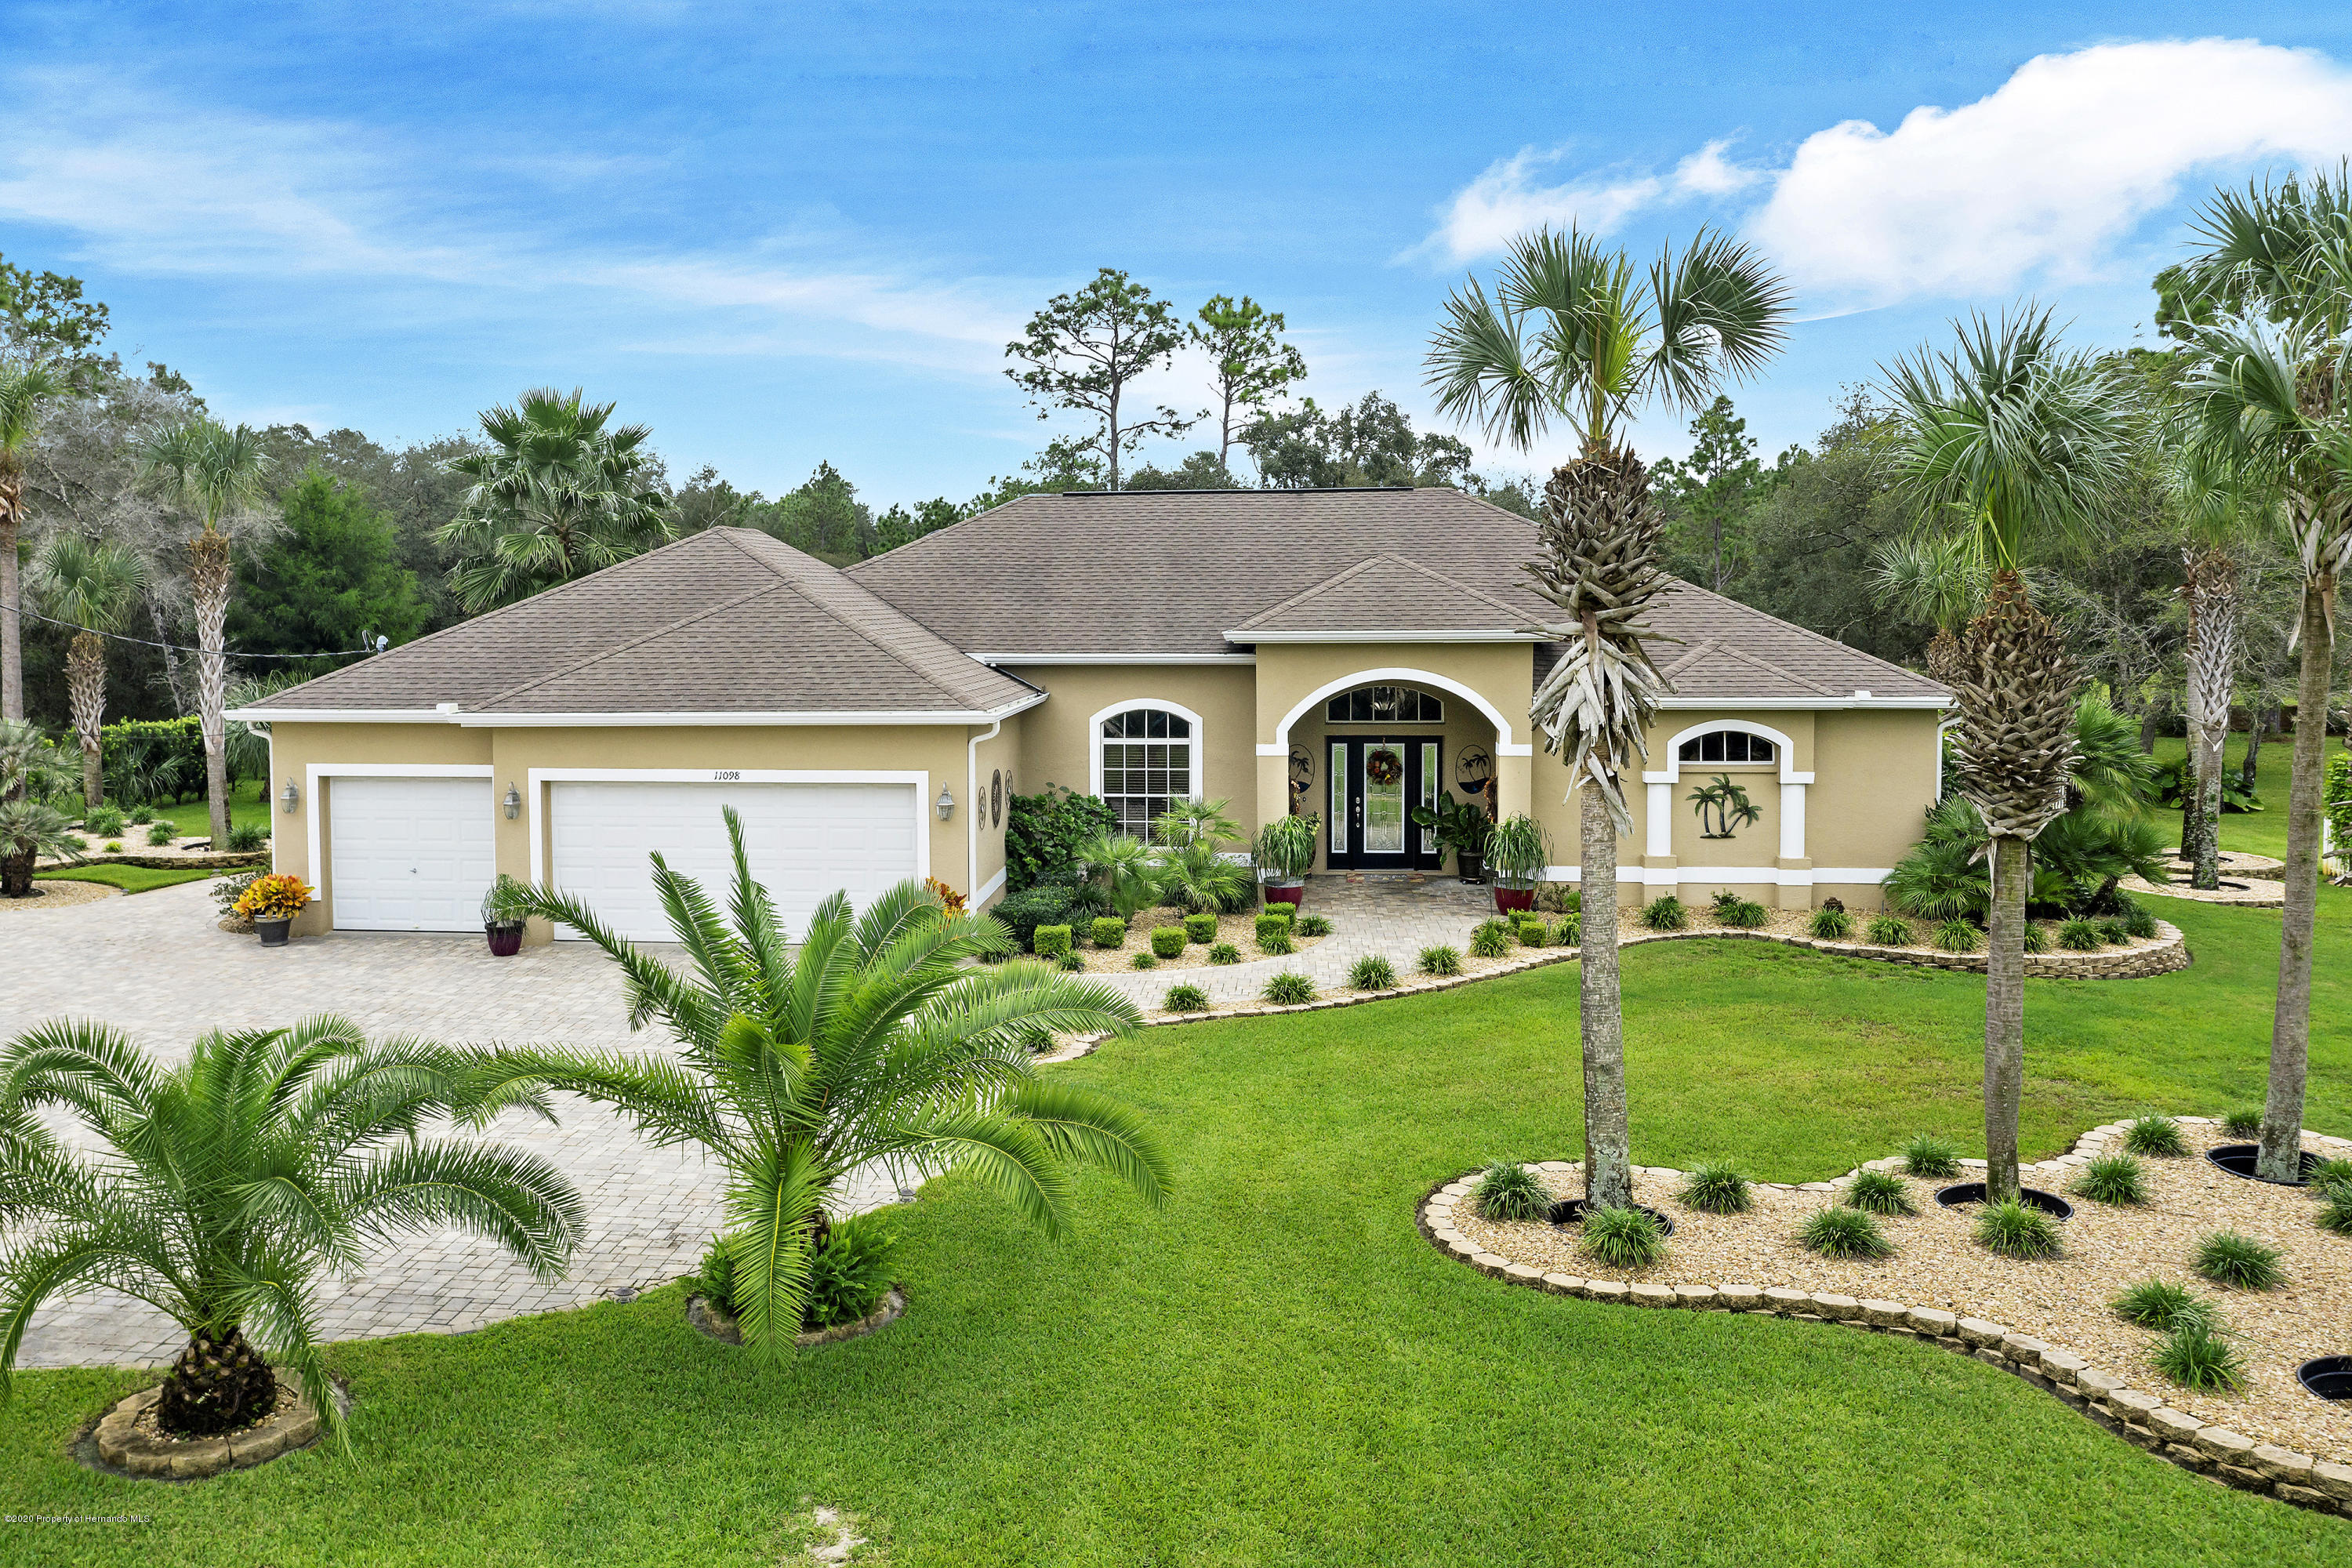 Details for 11098 Hexam Road, Weeki Wachee, FL 34613